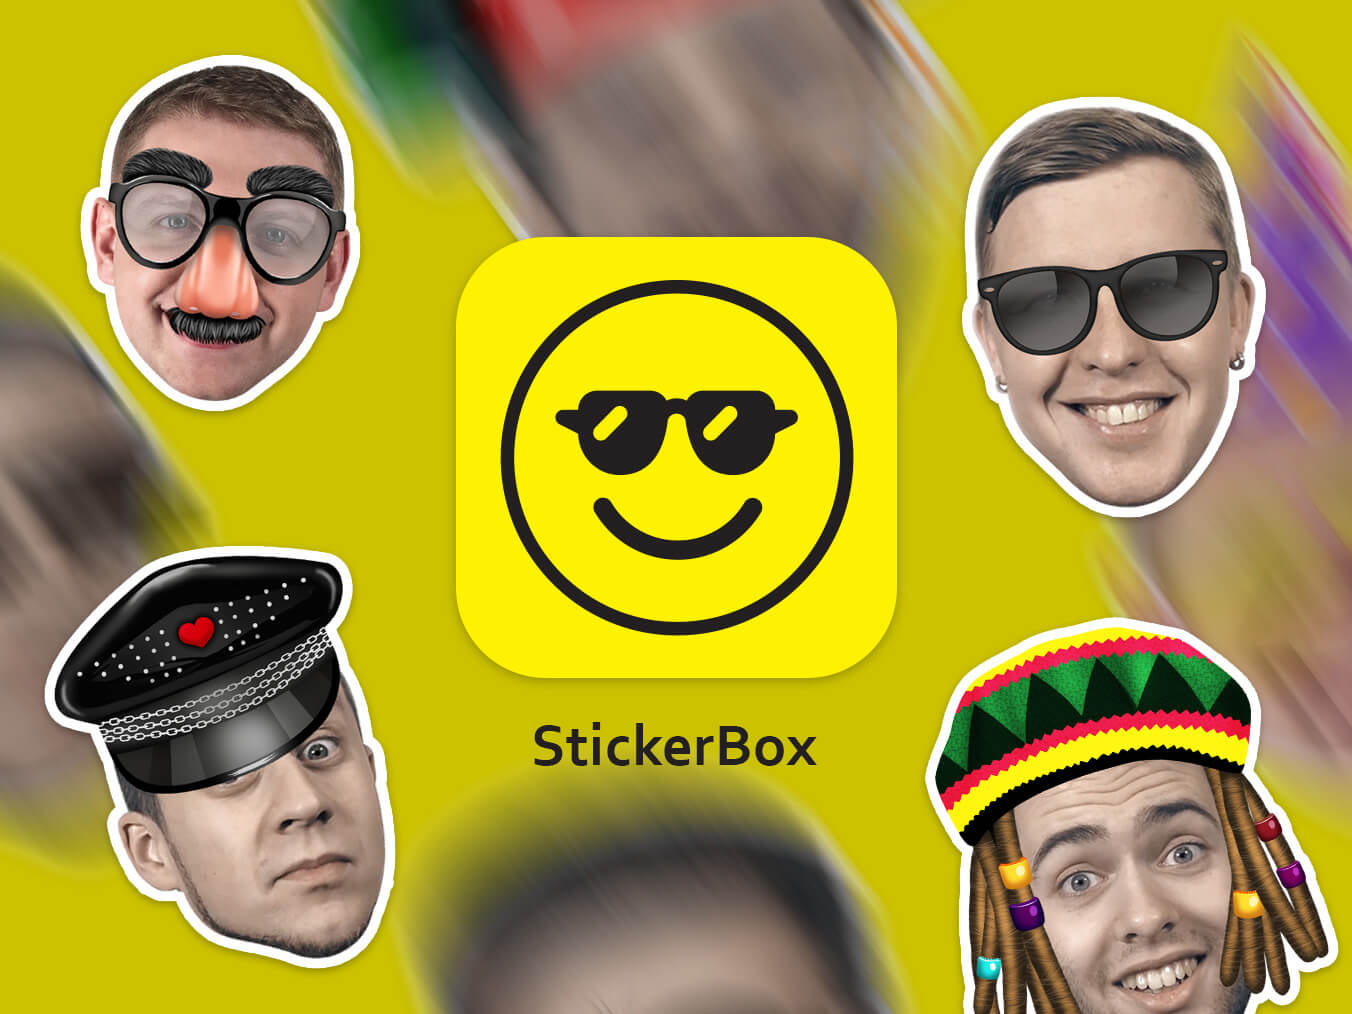 StickerBox - Episode 1: Why we failed when we tried to segment faces with algorithms